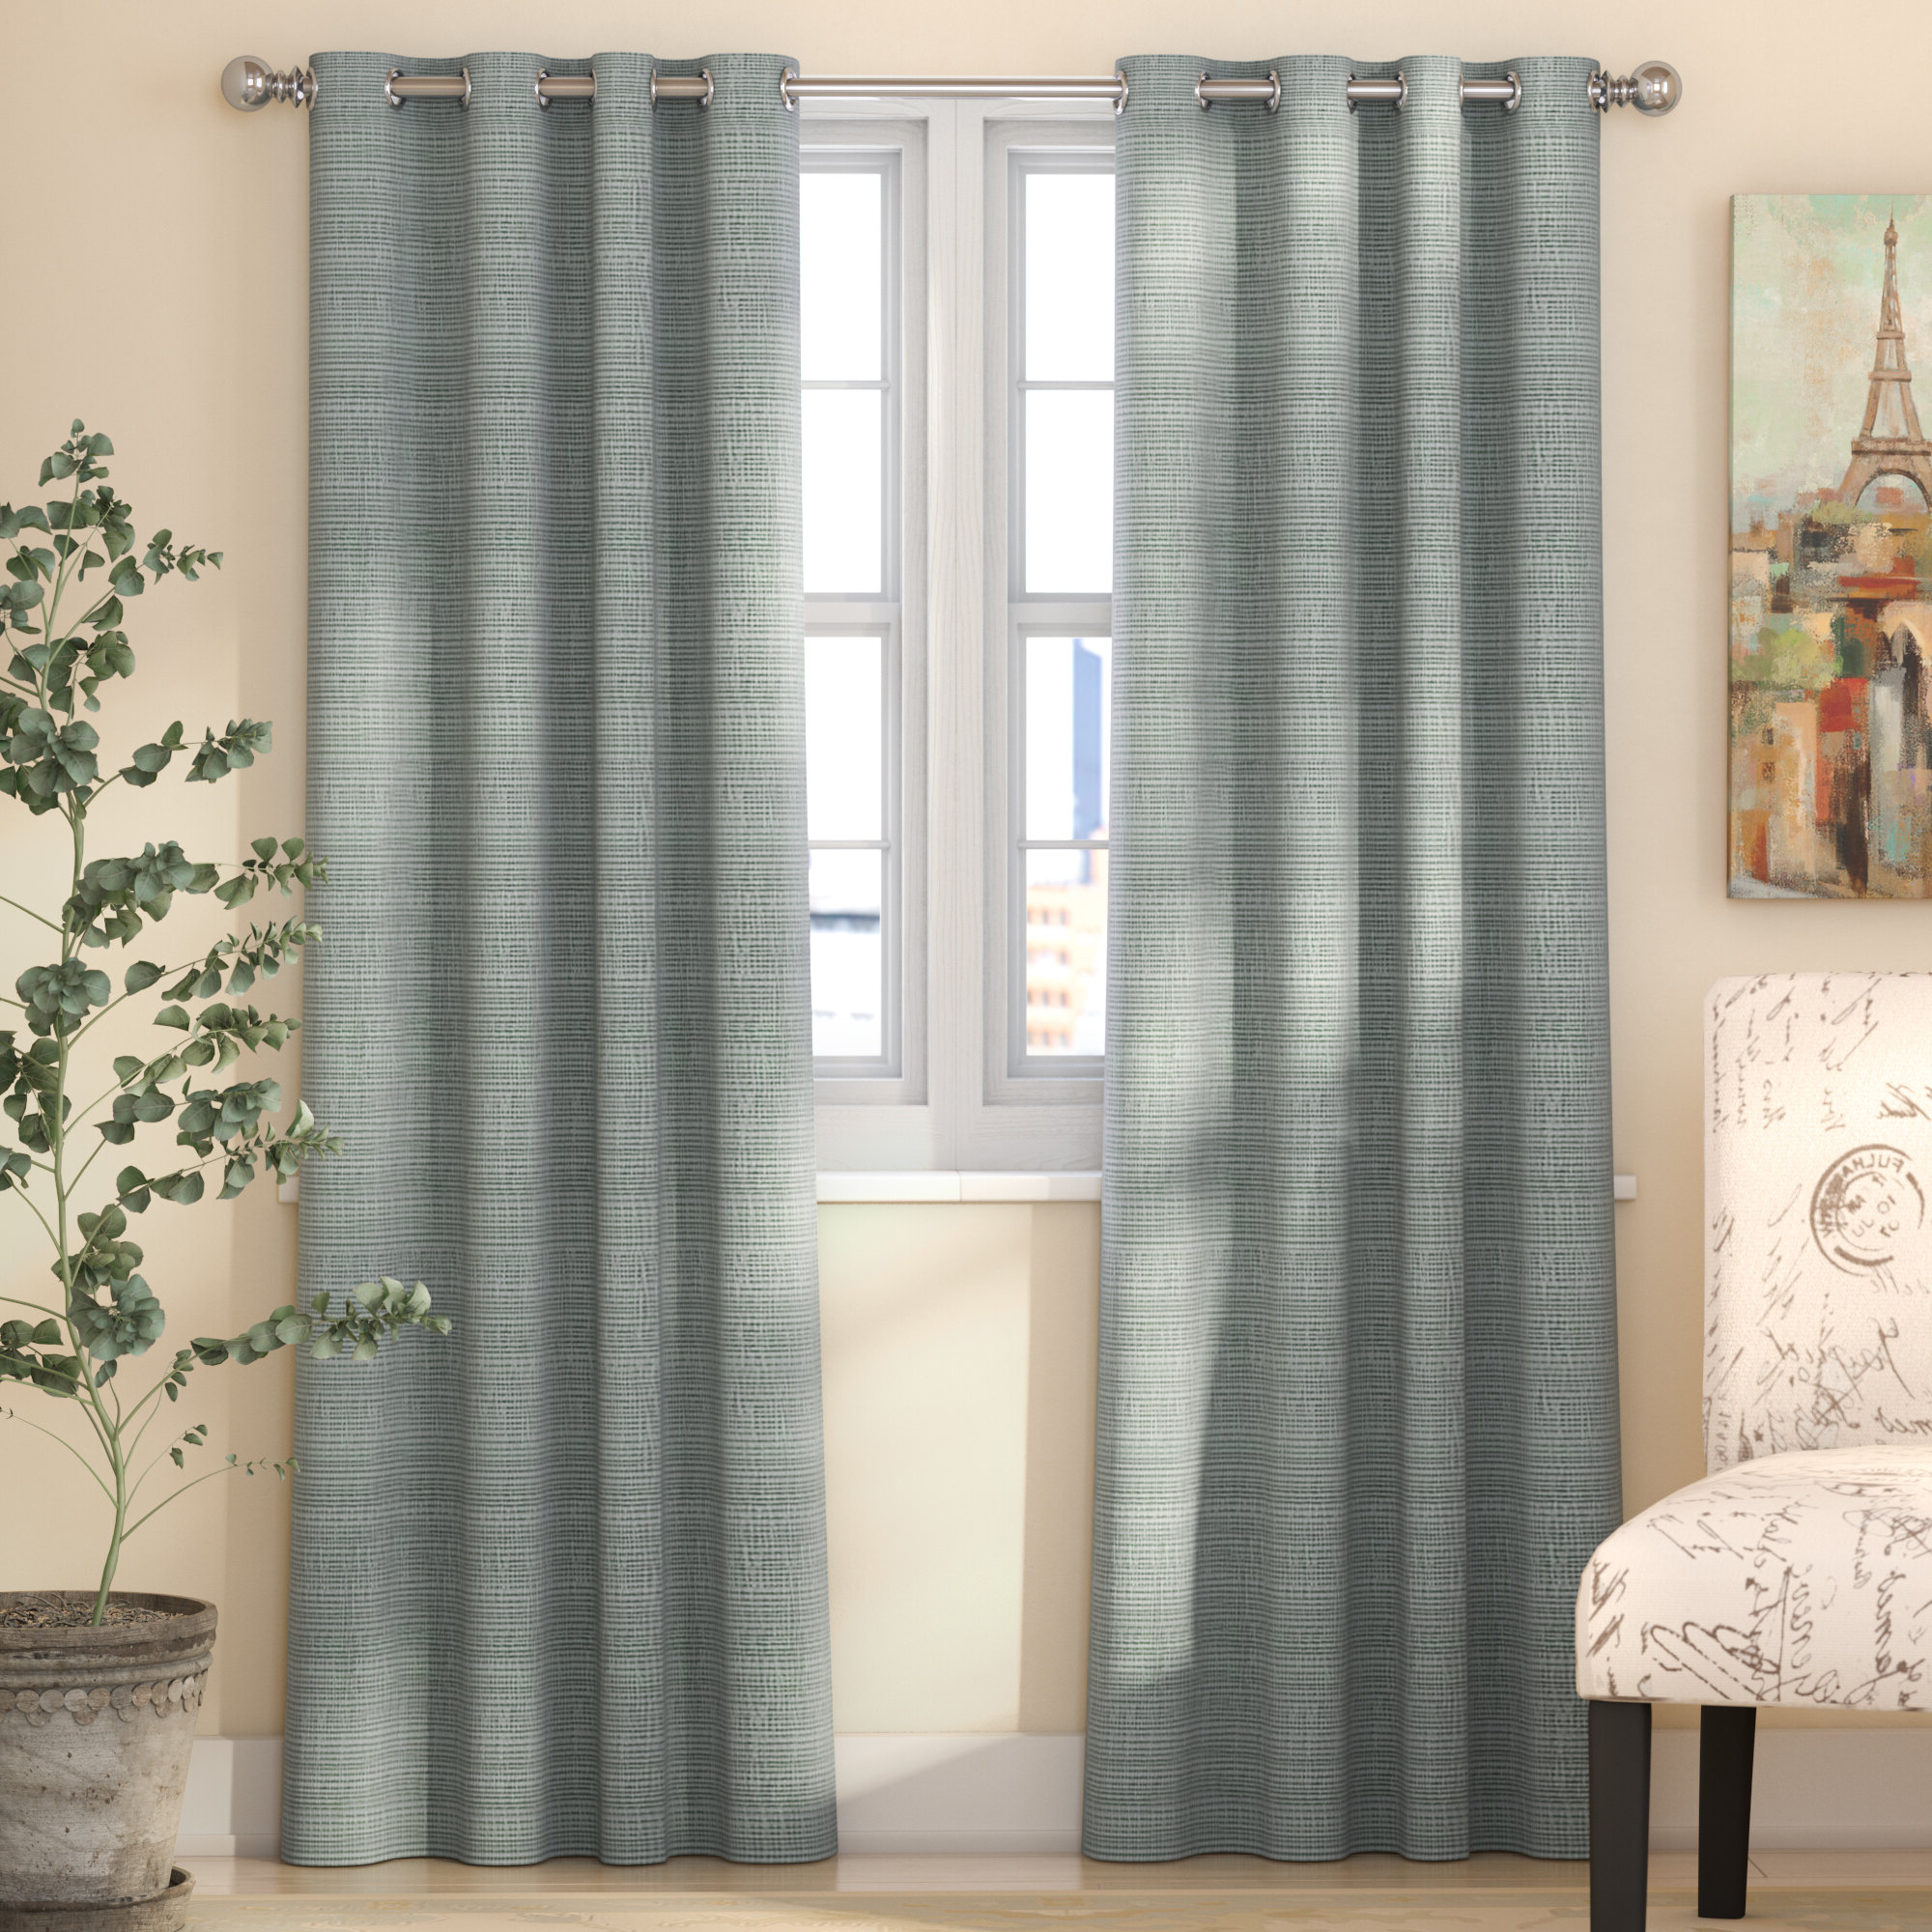 Fashionable Bellefontaine Solid Max Blackout Thermal Grommet Single Curtain Panel For Solid Insulated Thermal Blackout Long Length Curtain Panel Pairs (View 13 of 20)